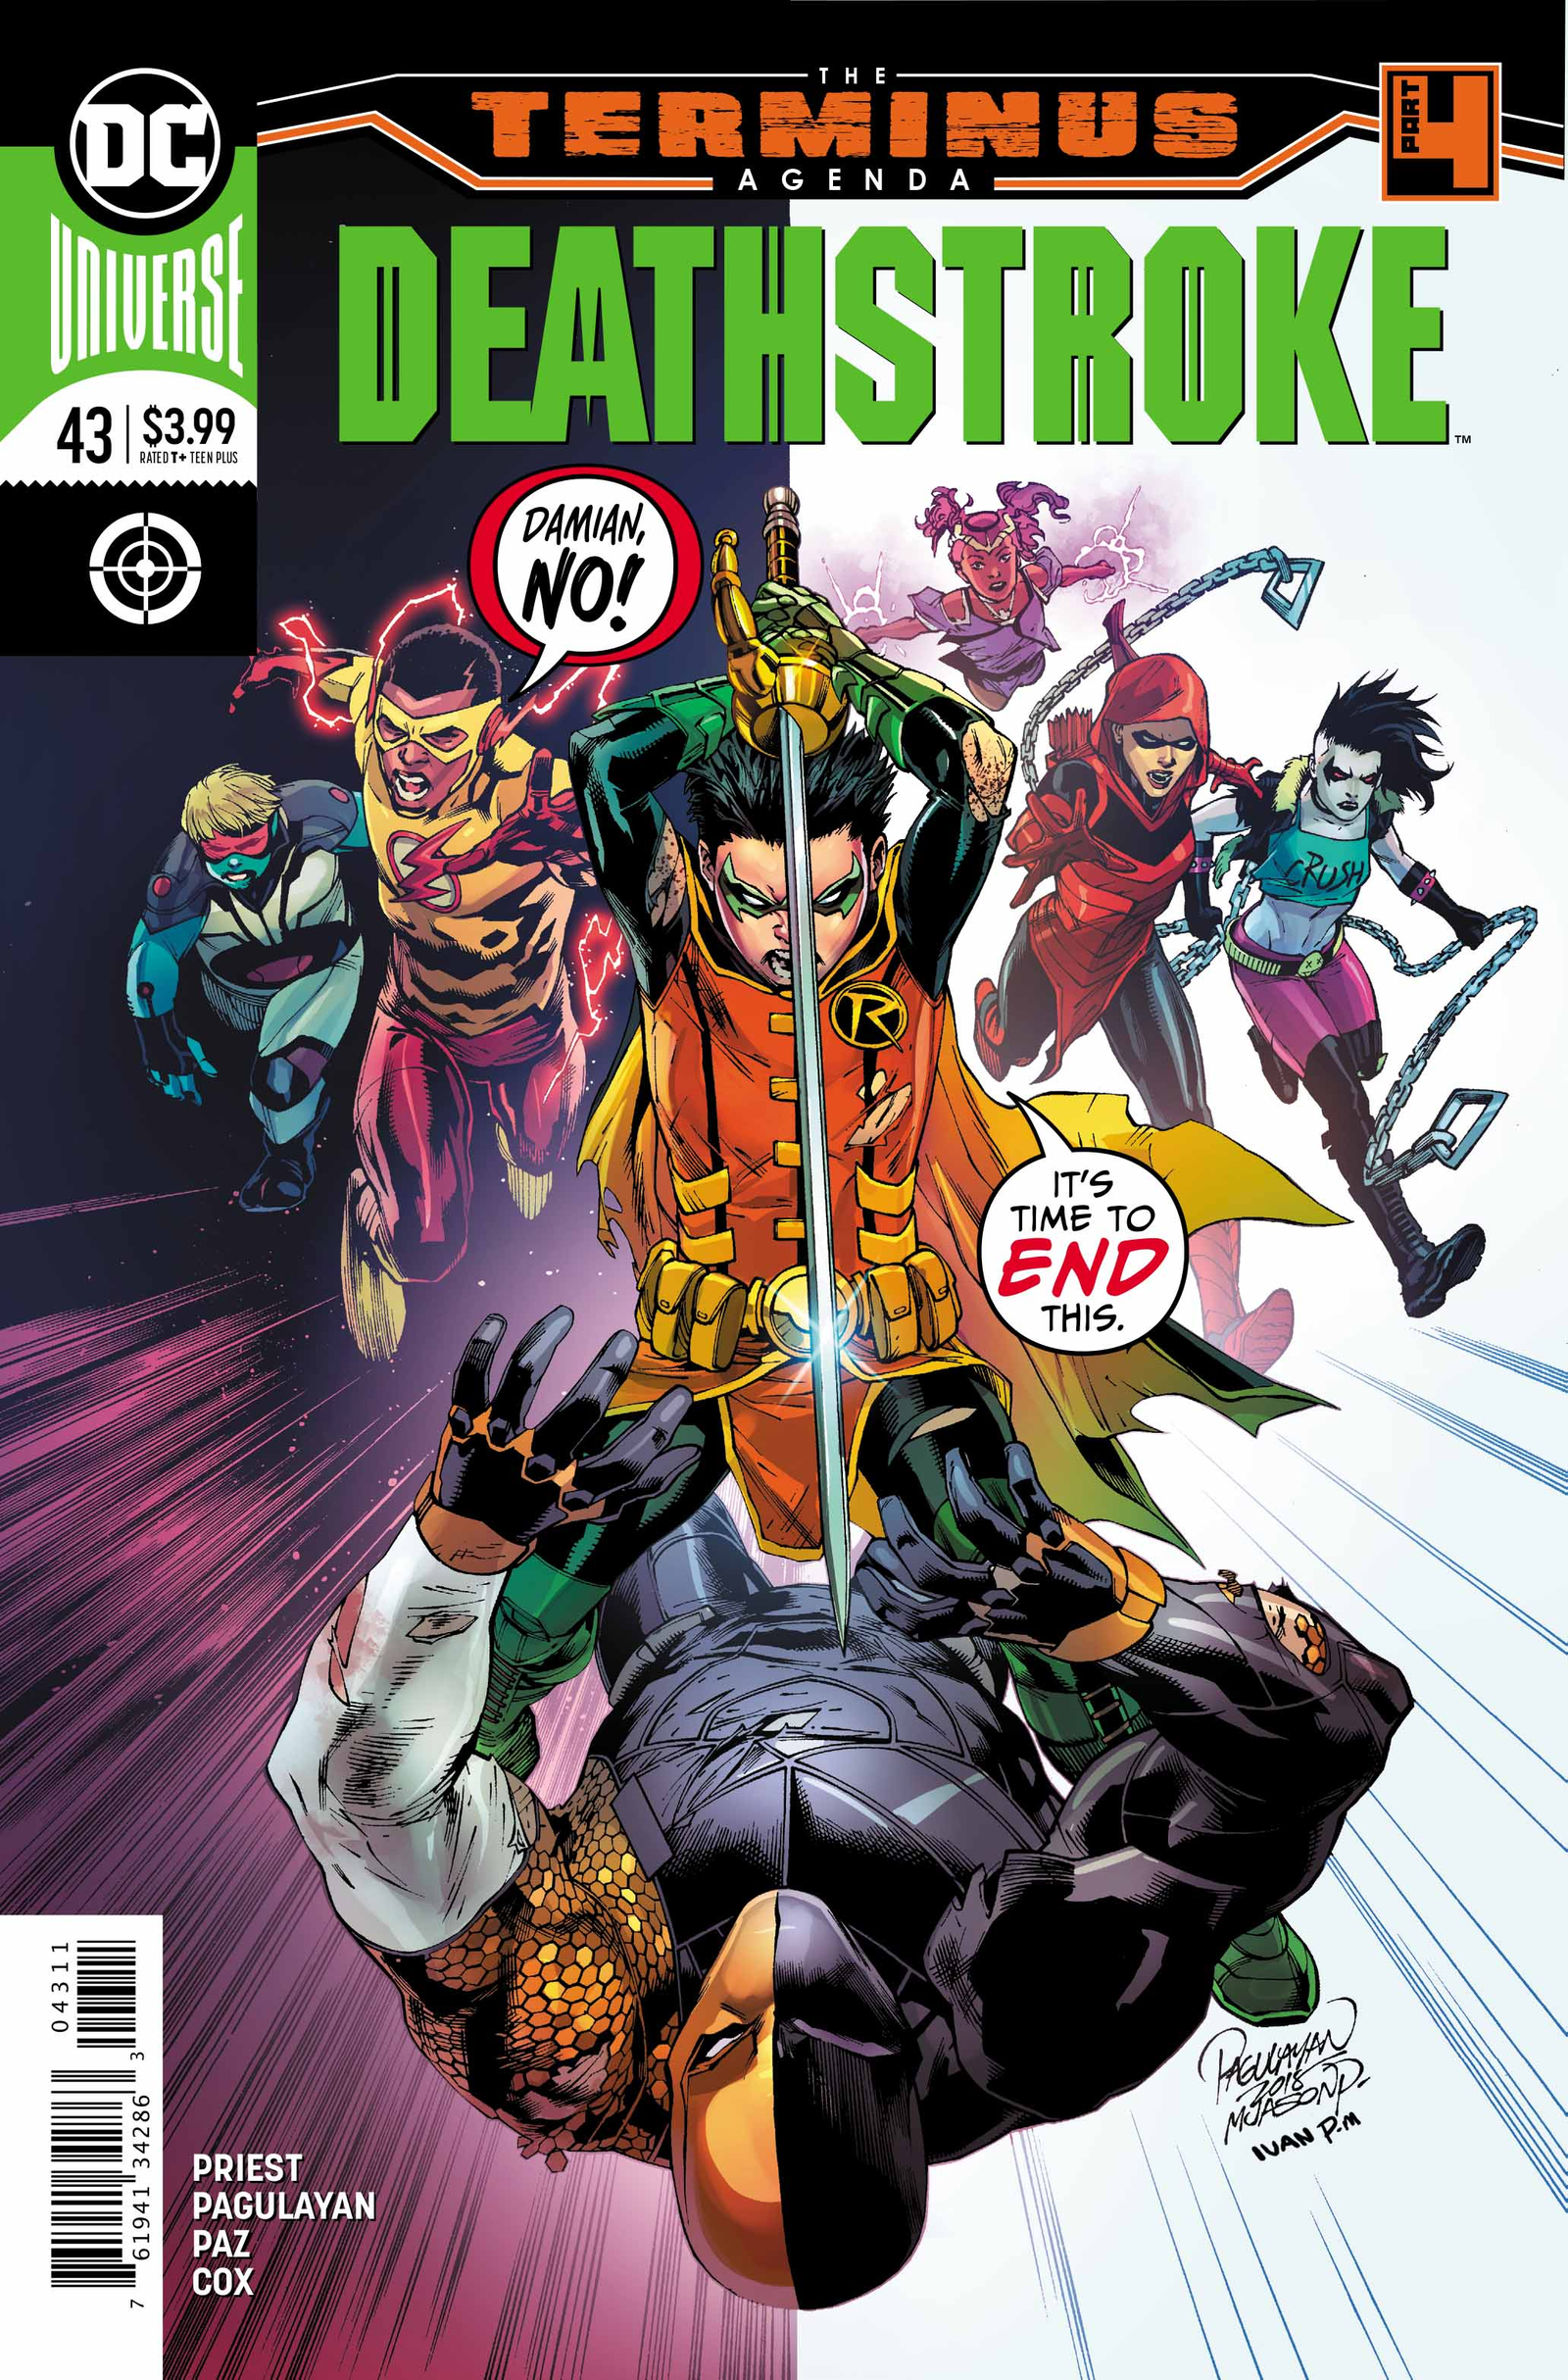 Cover by Carlo Pagulayan, Jason Paz, and Ivan Plascencia